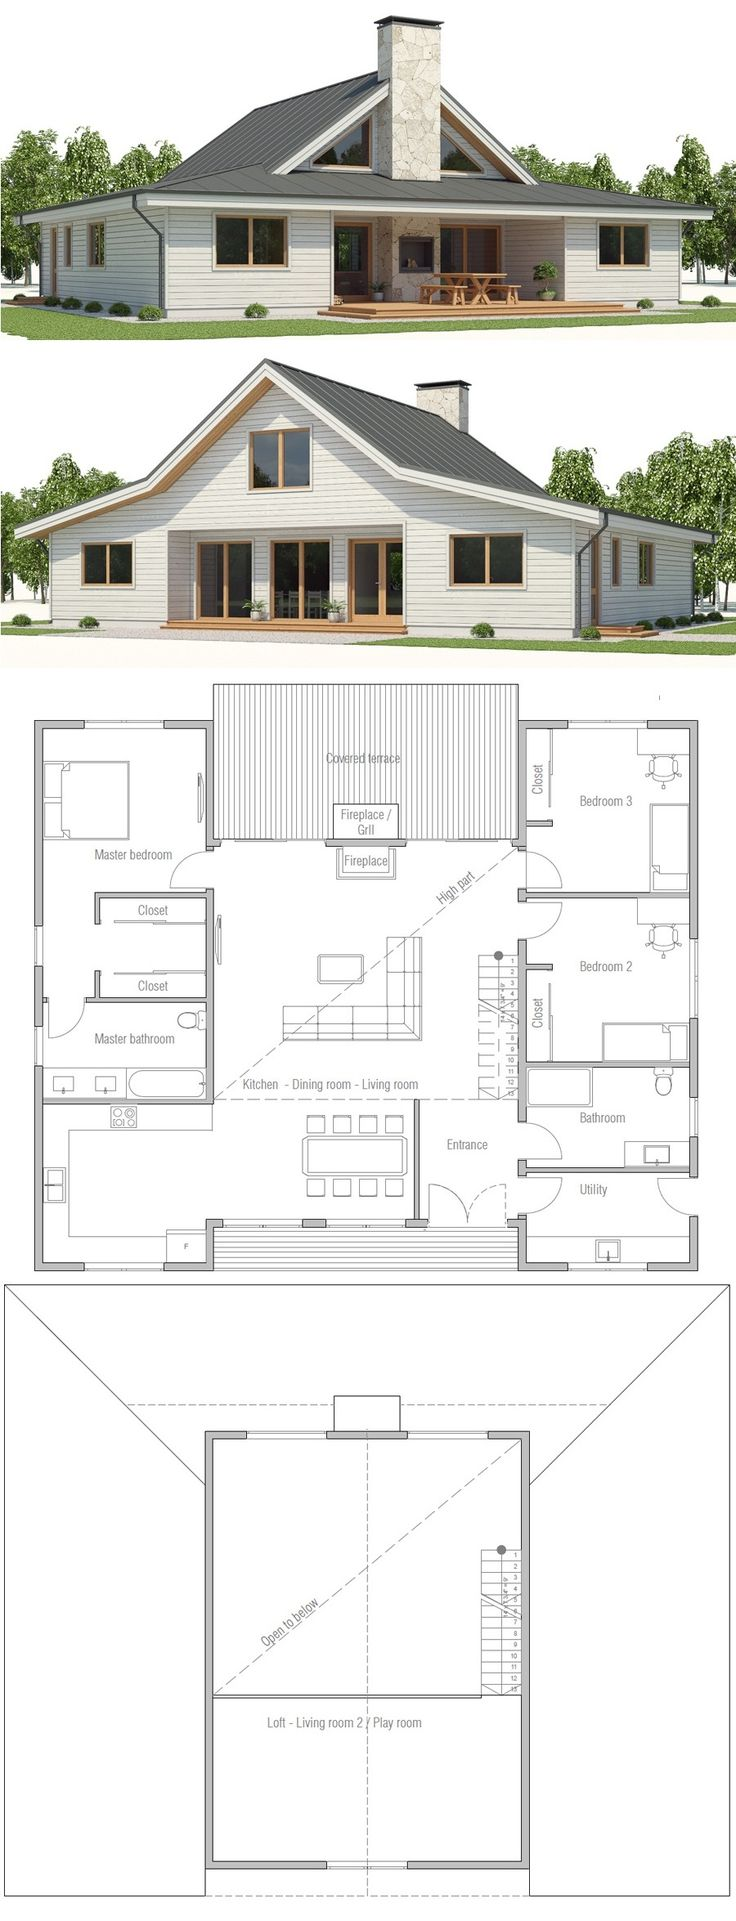 Home plan 741 best House Plans images